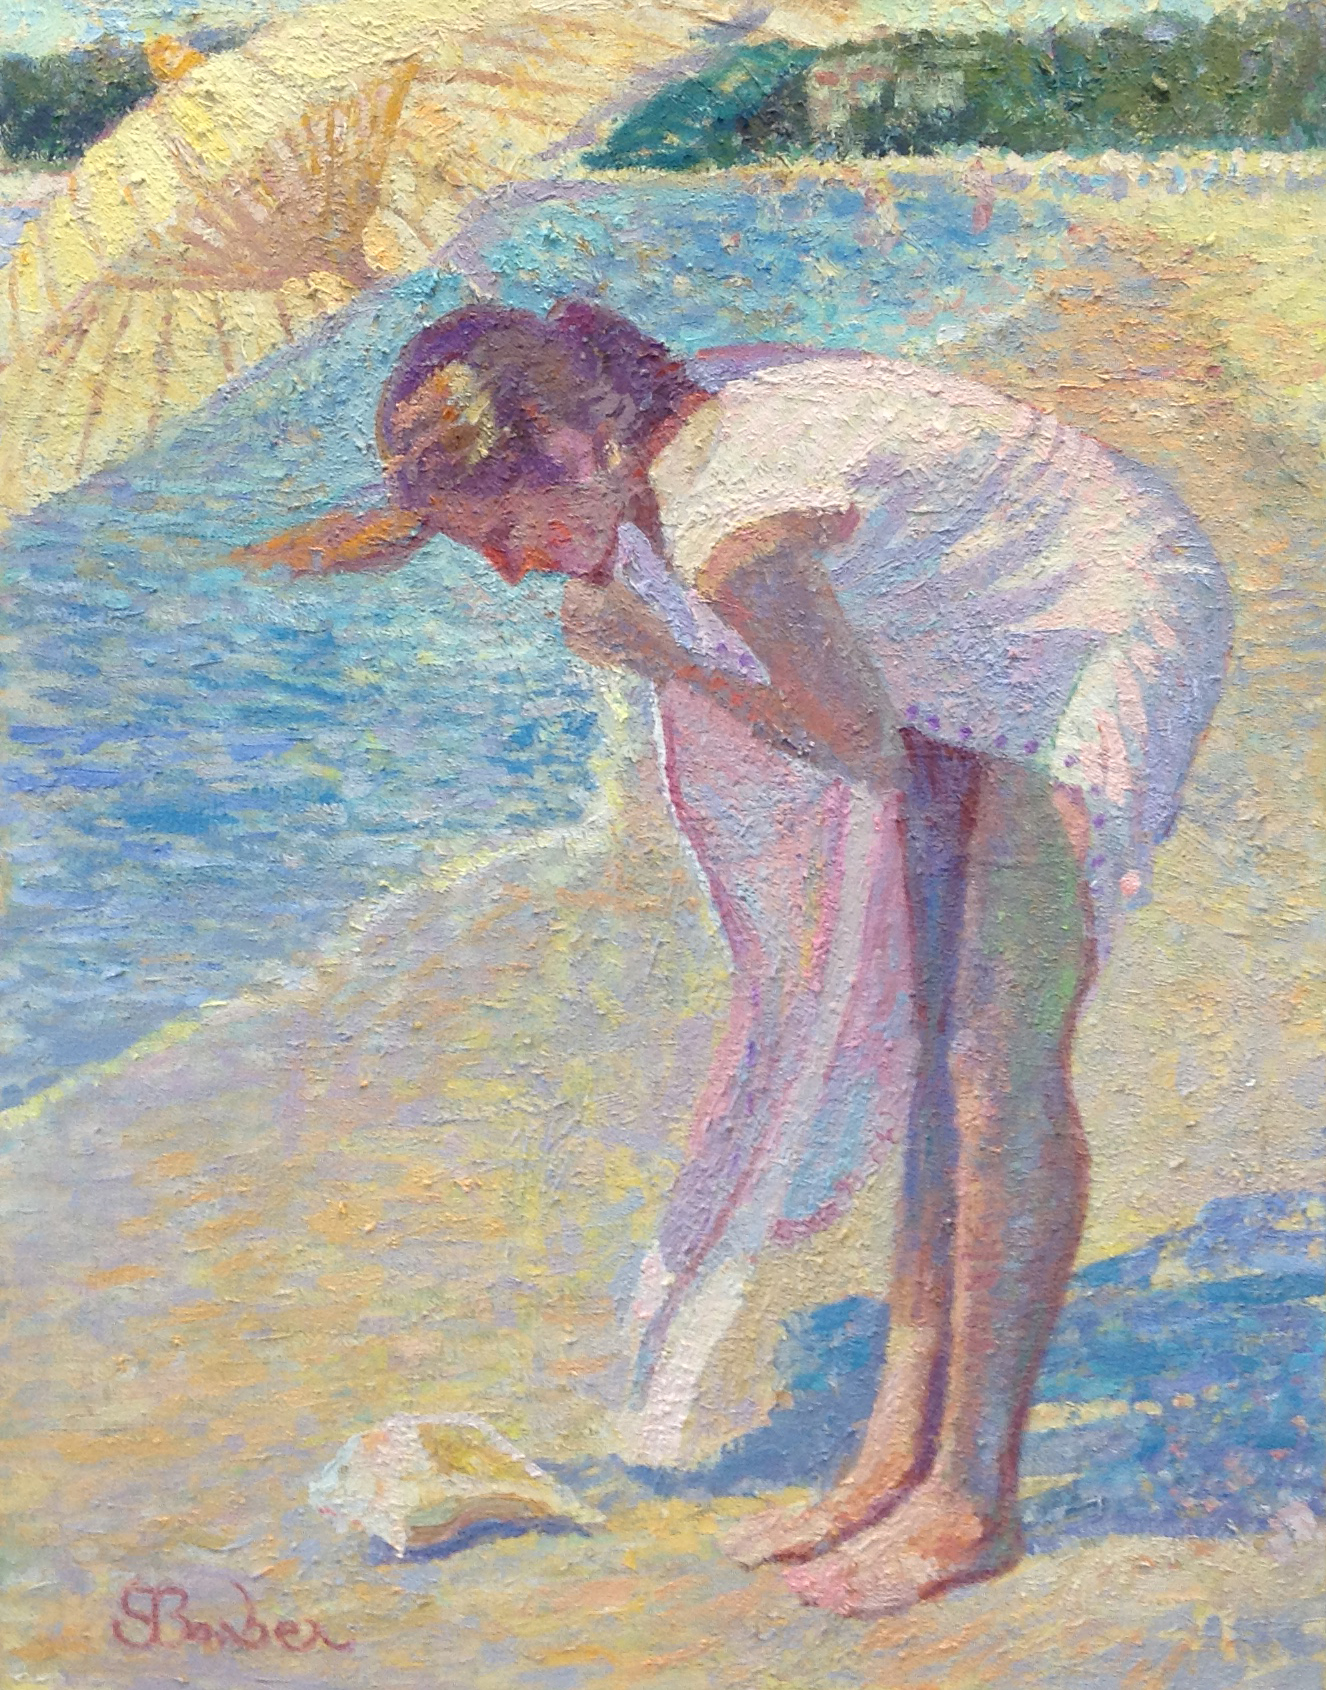 Katherine by the Sea  | 22 x 28 |  Oil on canvas